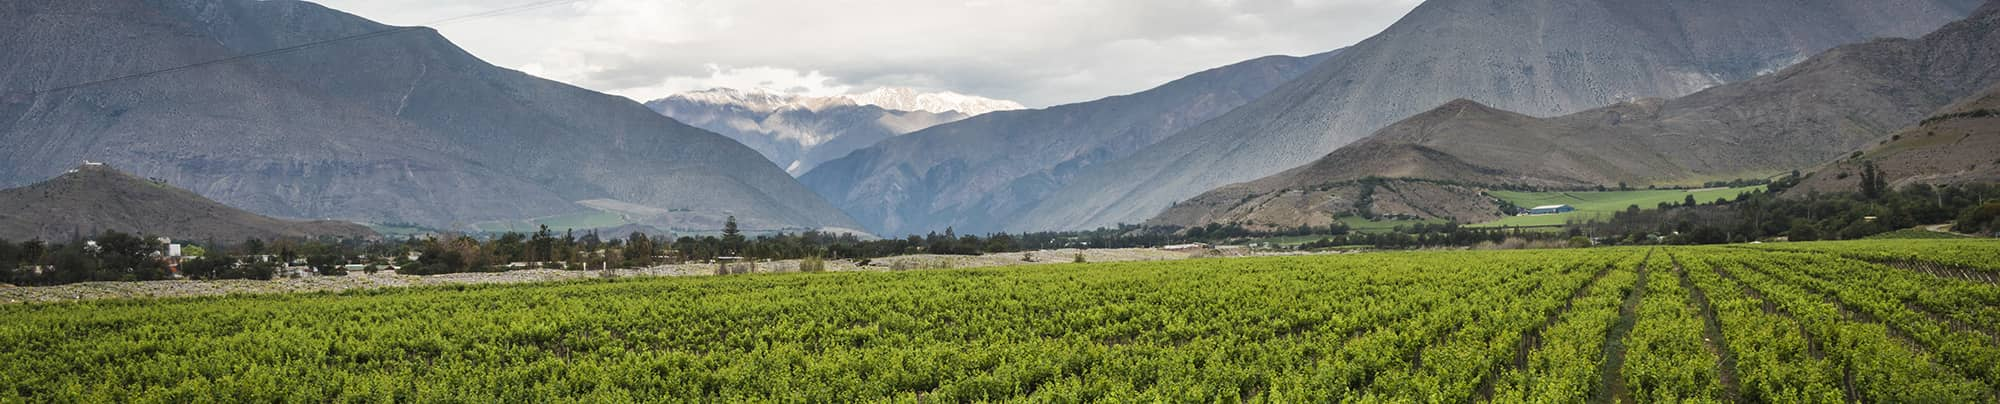 Chile wine guide